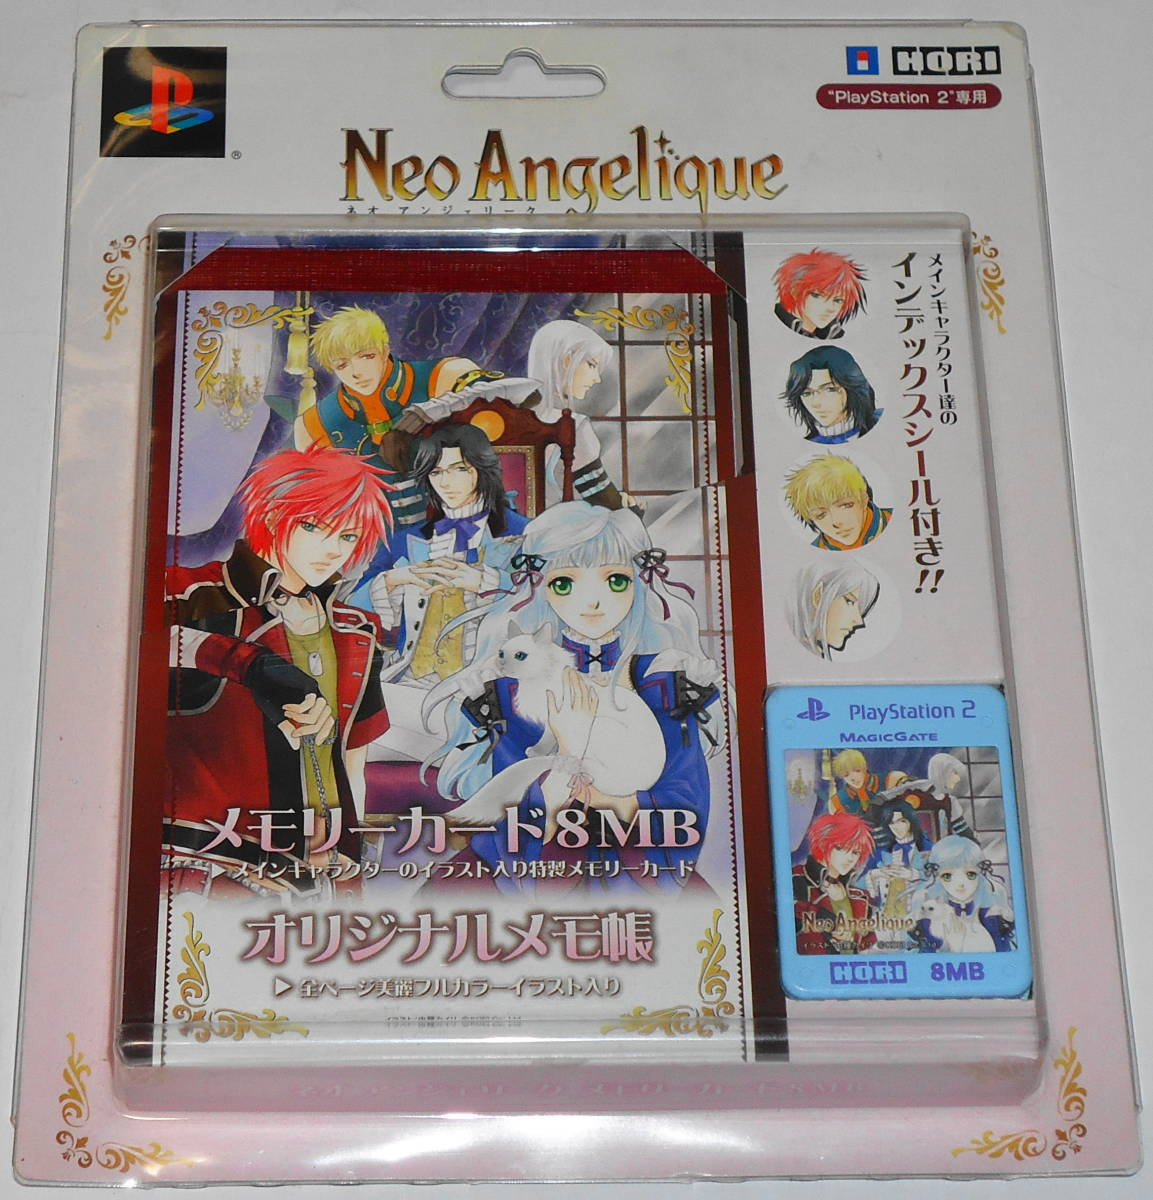 Free Shipping unused neo Angelique PS2 memory card 由羅 the full-color illustrations Notepad with seal completely limited production products